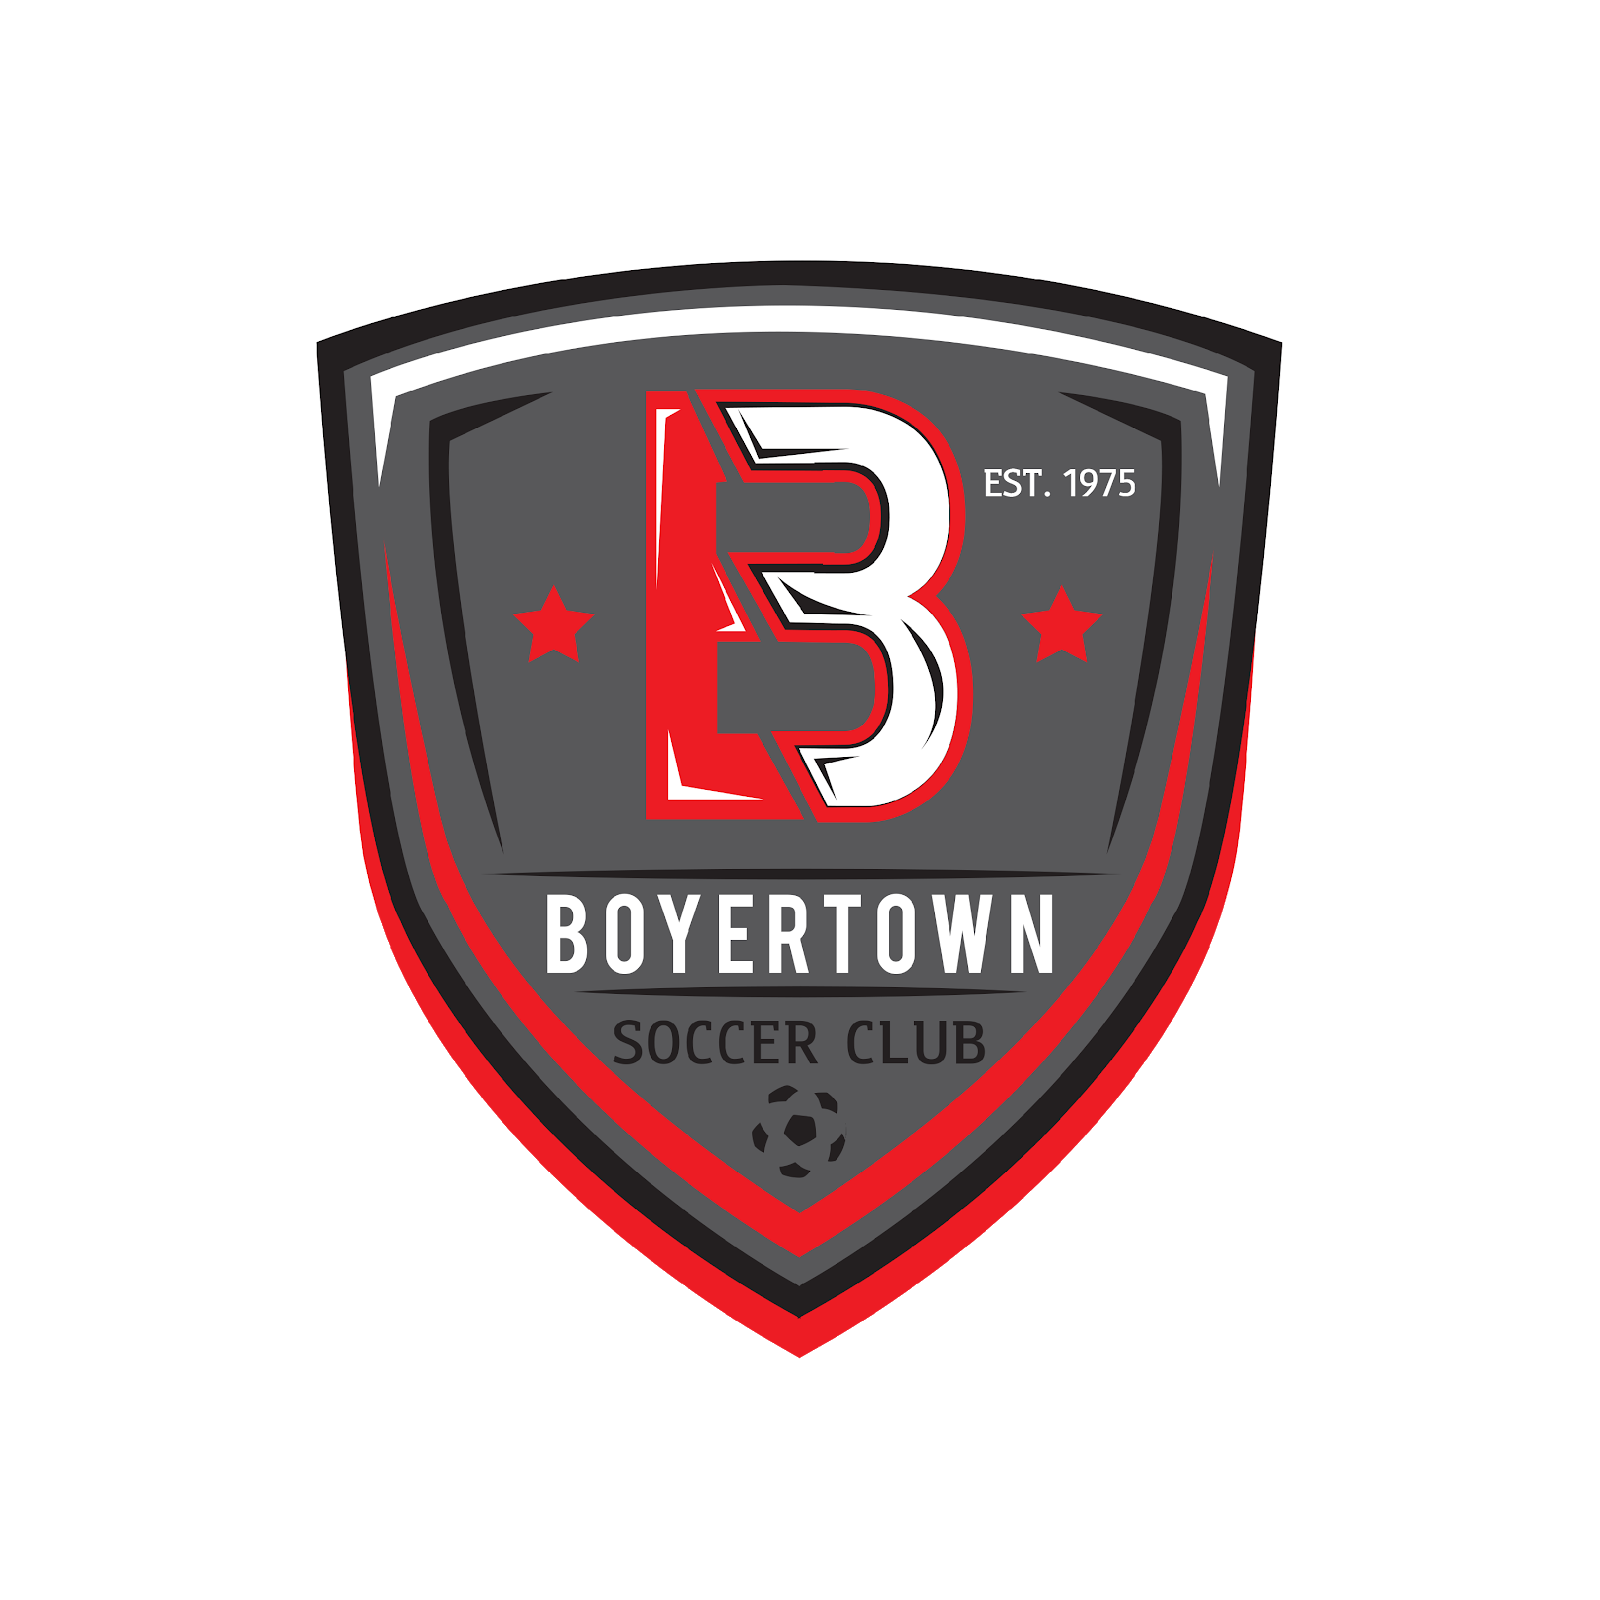 d9ab52a1d01 We are thrilled to announce that our new online spirit wear store is now up  and running! Boyertown Soccer Club ...